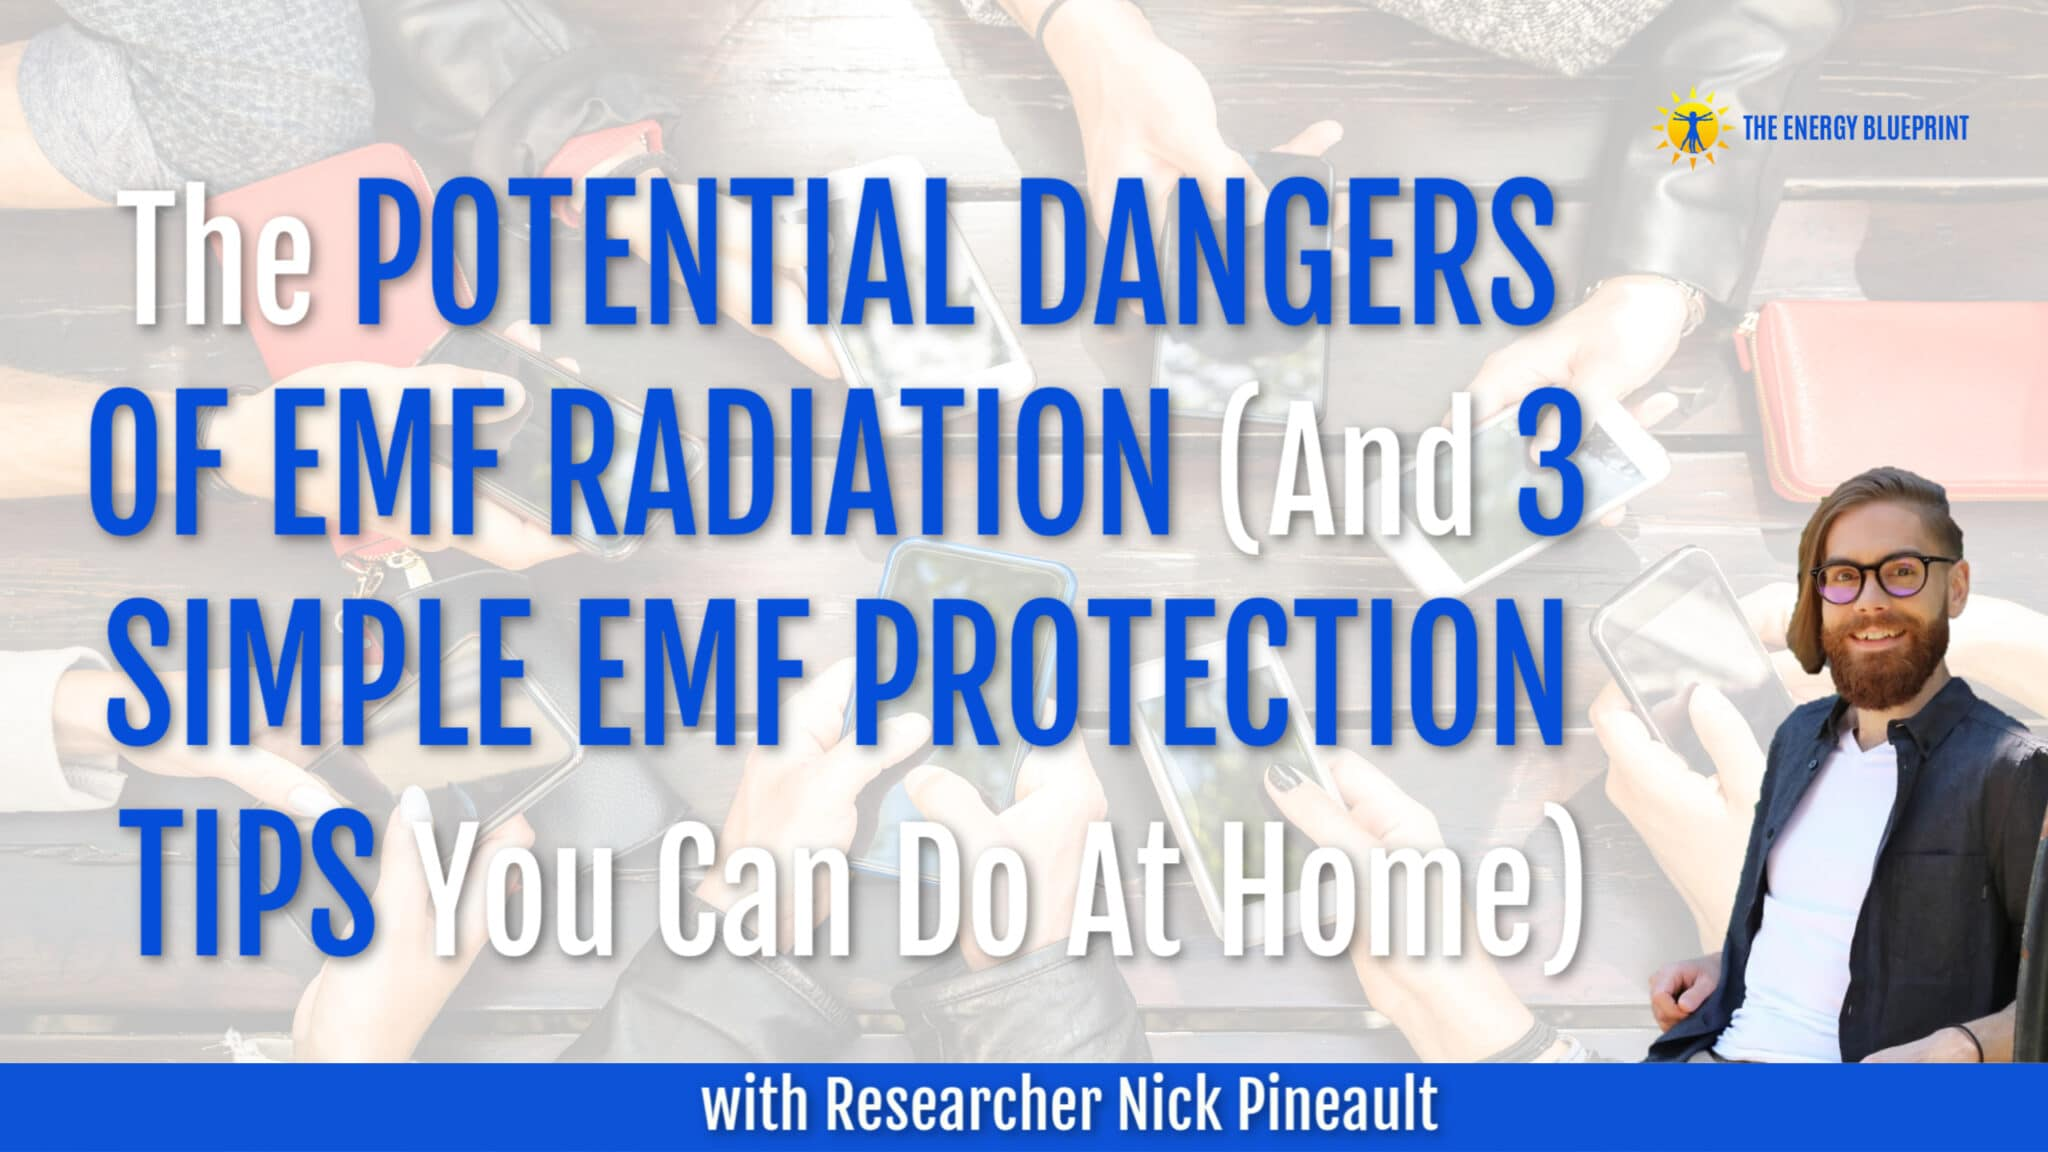 The potential dangers of EMF radiation and 3 simple EMF protection tips you can do at home